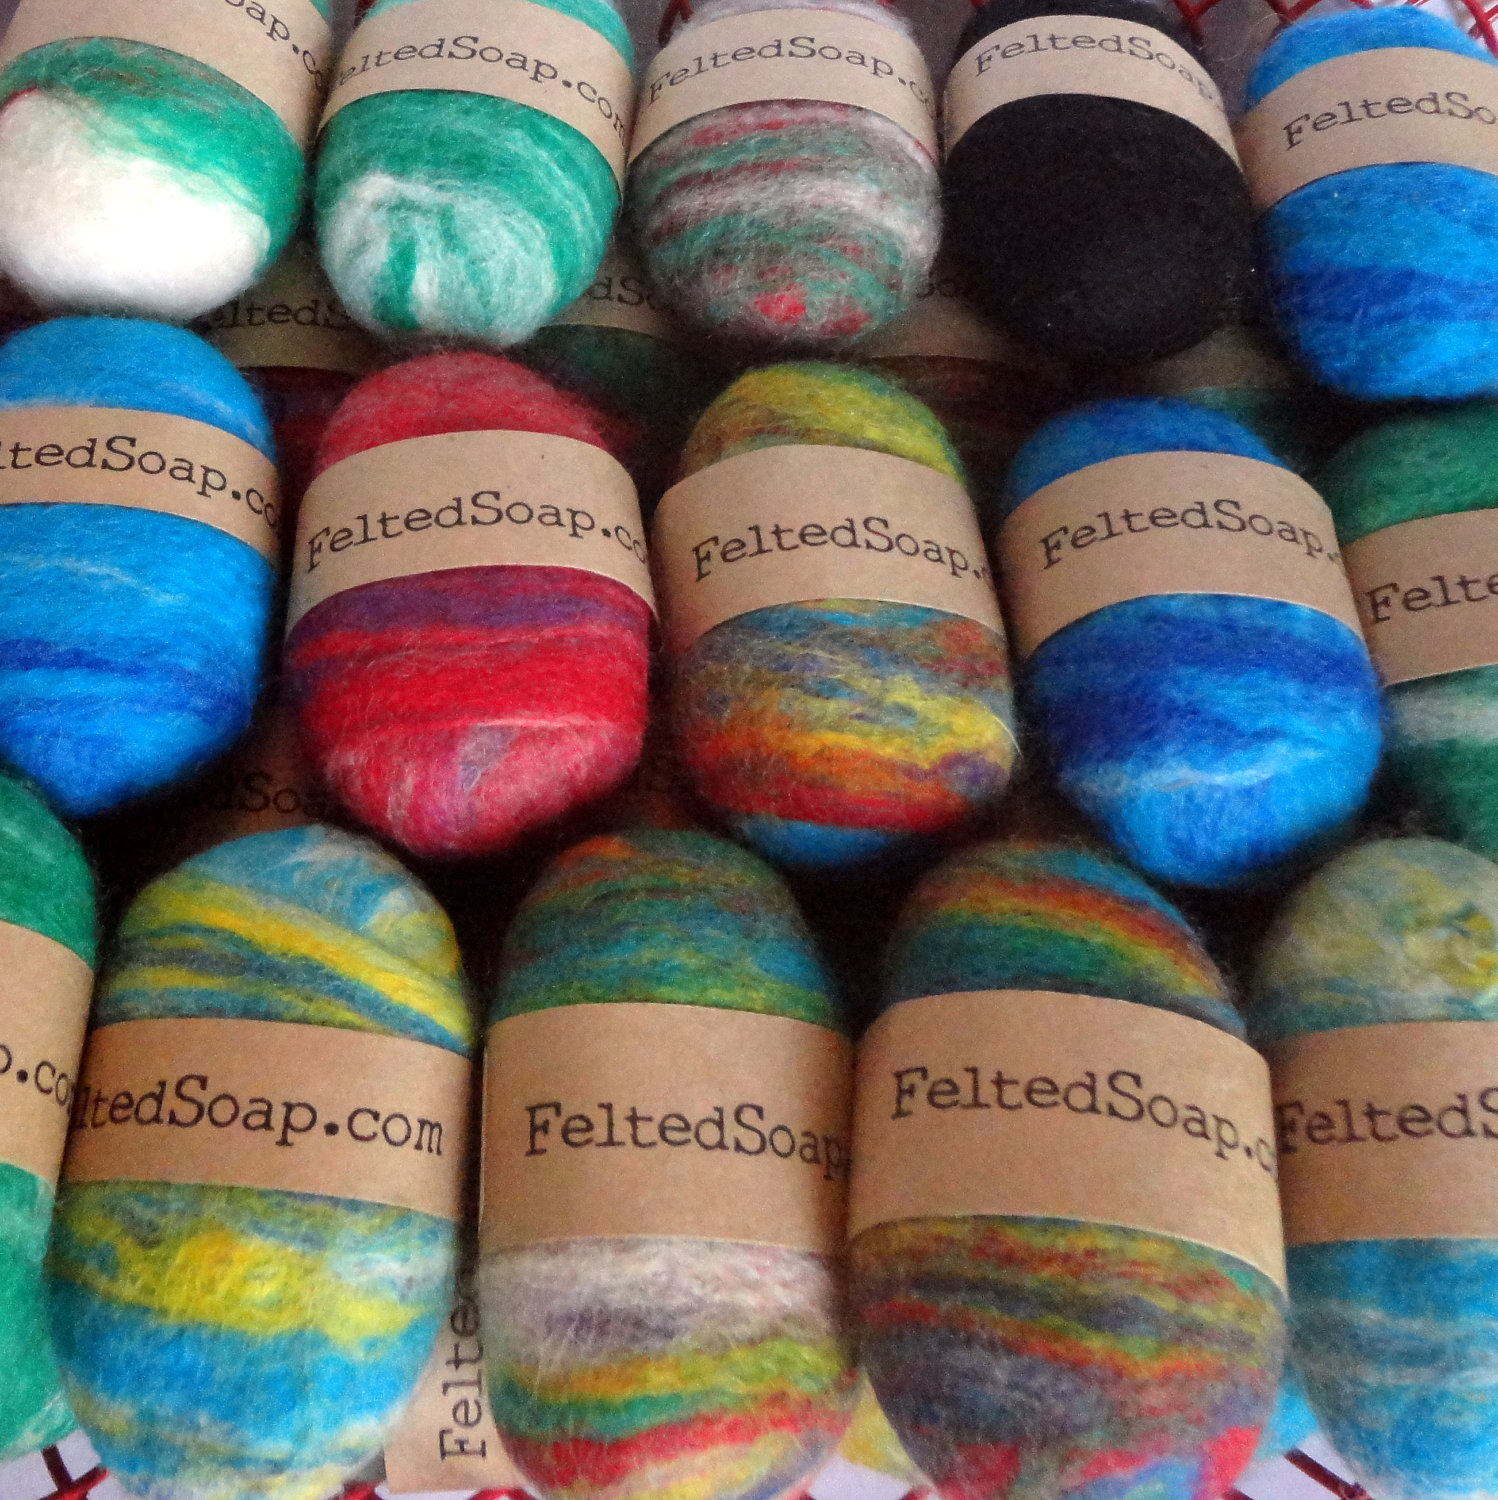 Felted-Soap-Labels